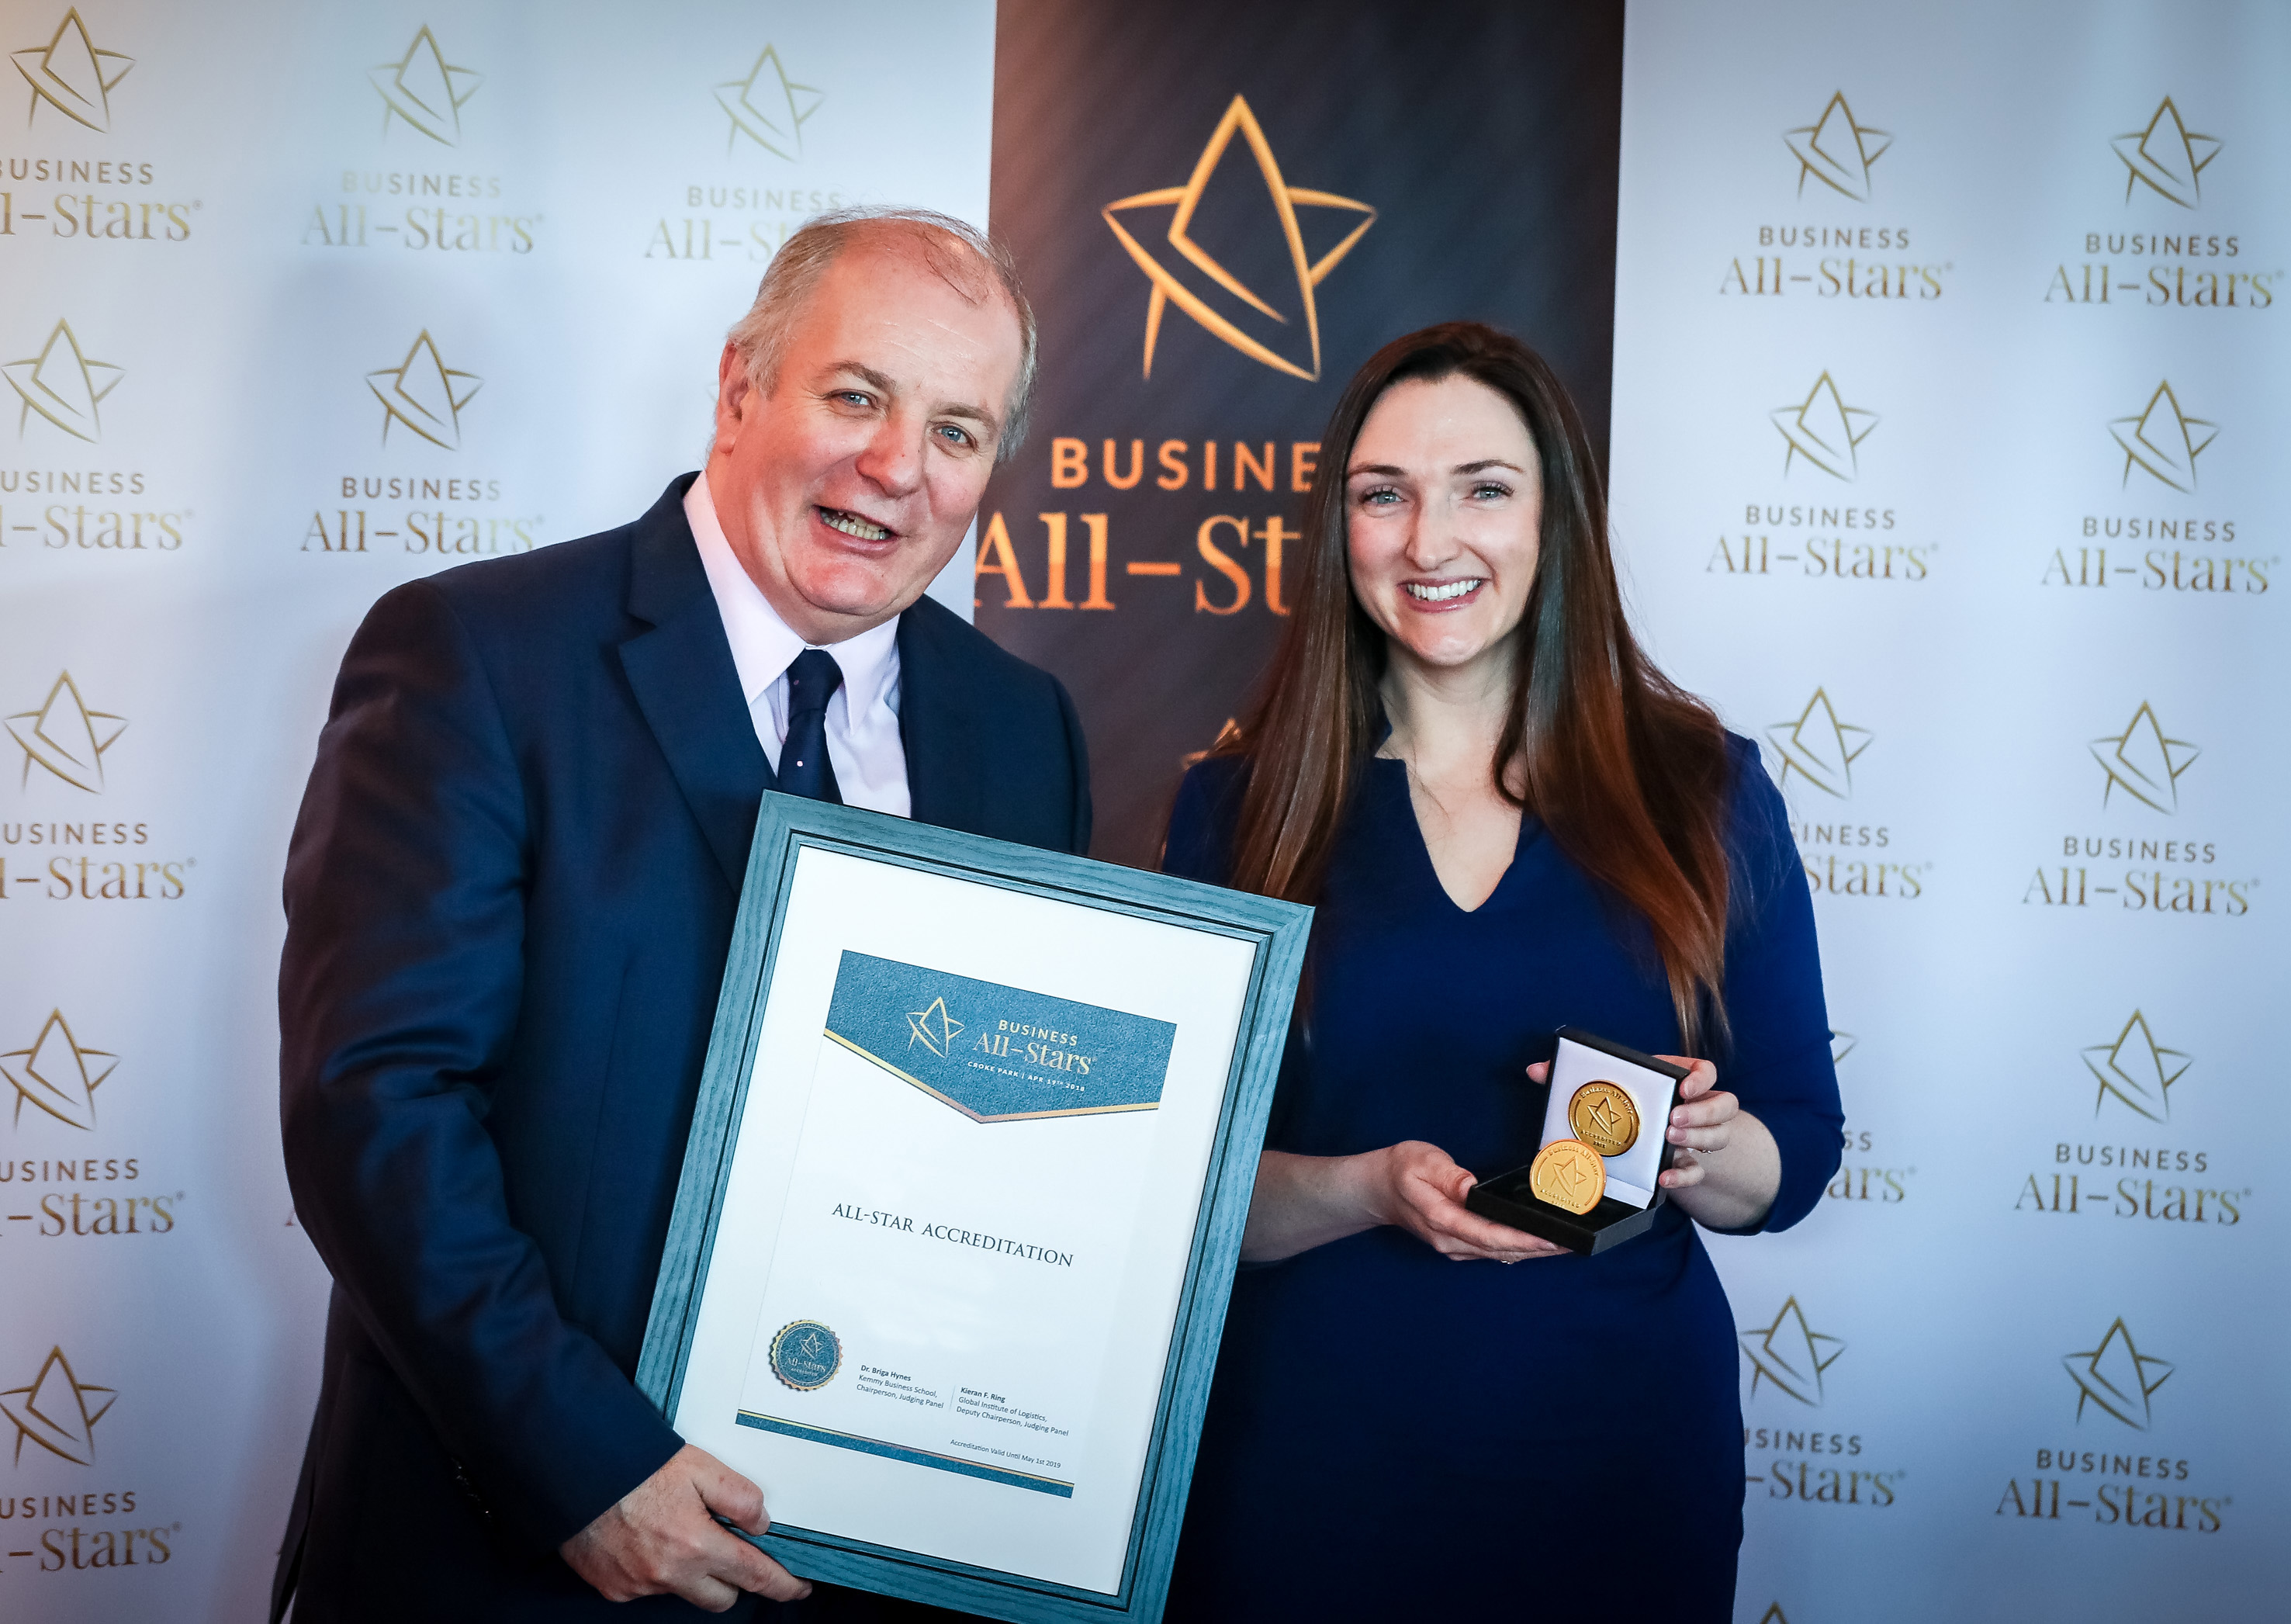 Polar Ice accredited as Business All-Star